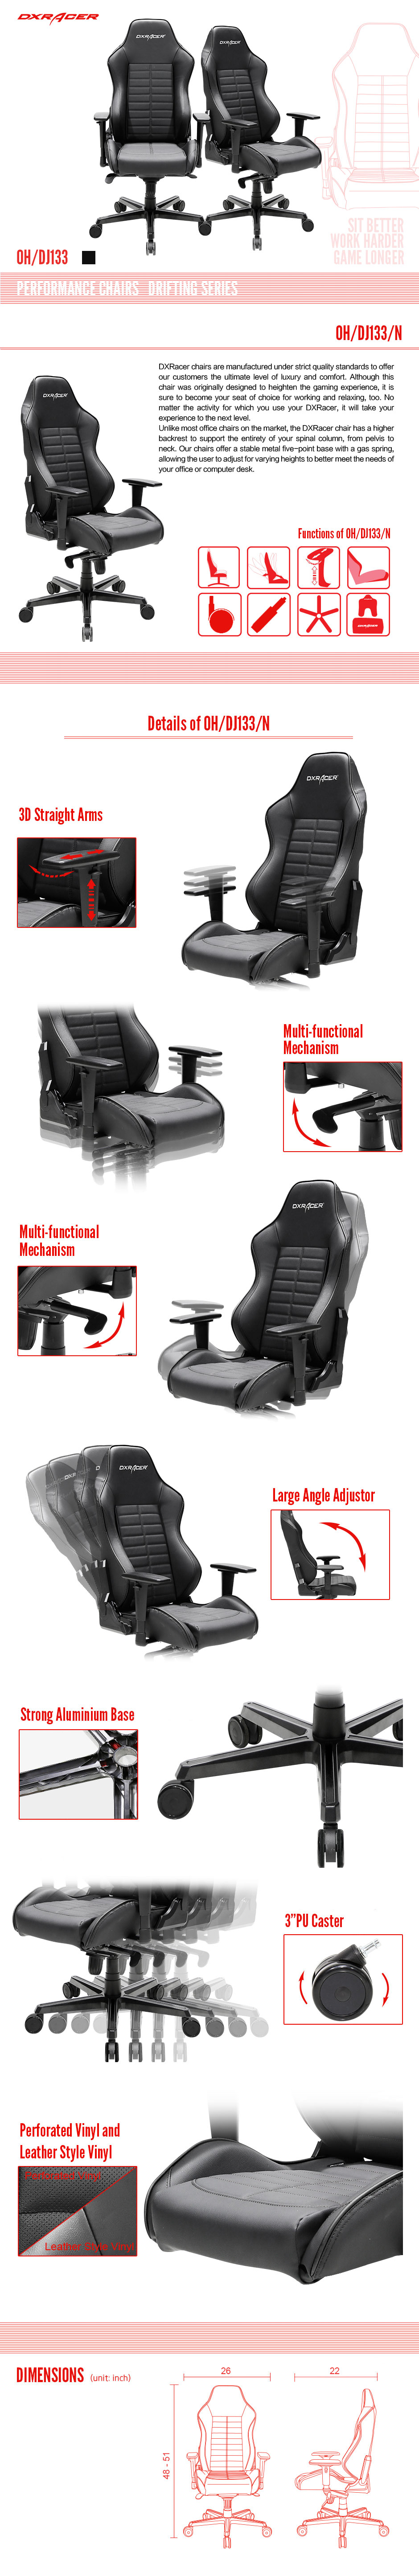 OH/DJ133/N - Drifting Series - Performance Chairs | DXRacer Official Website - Best Gaming Chair and Desk in the World